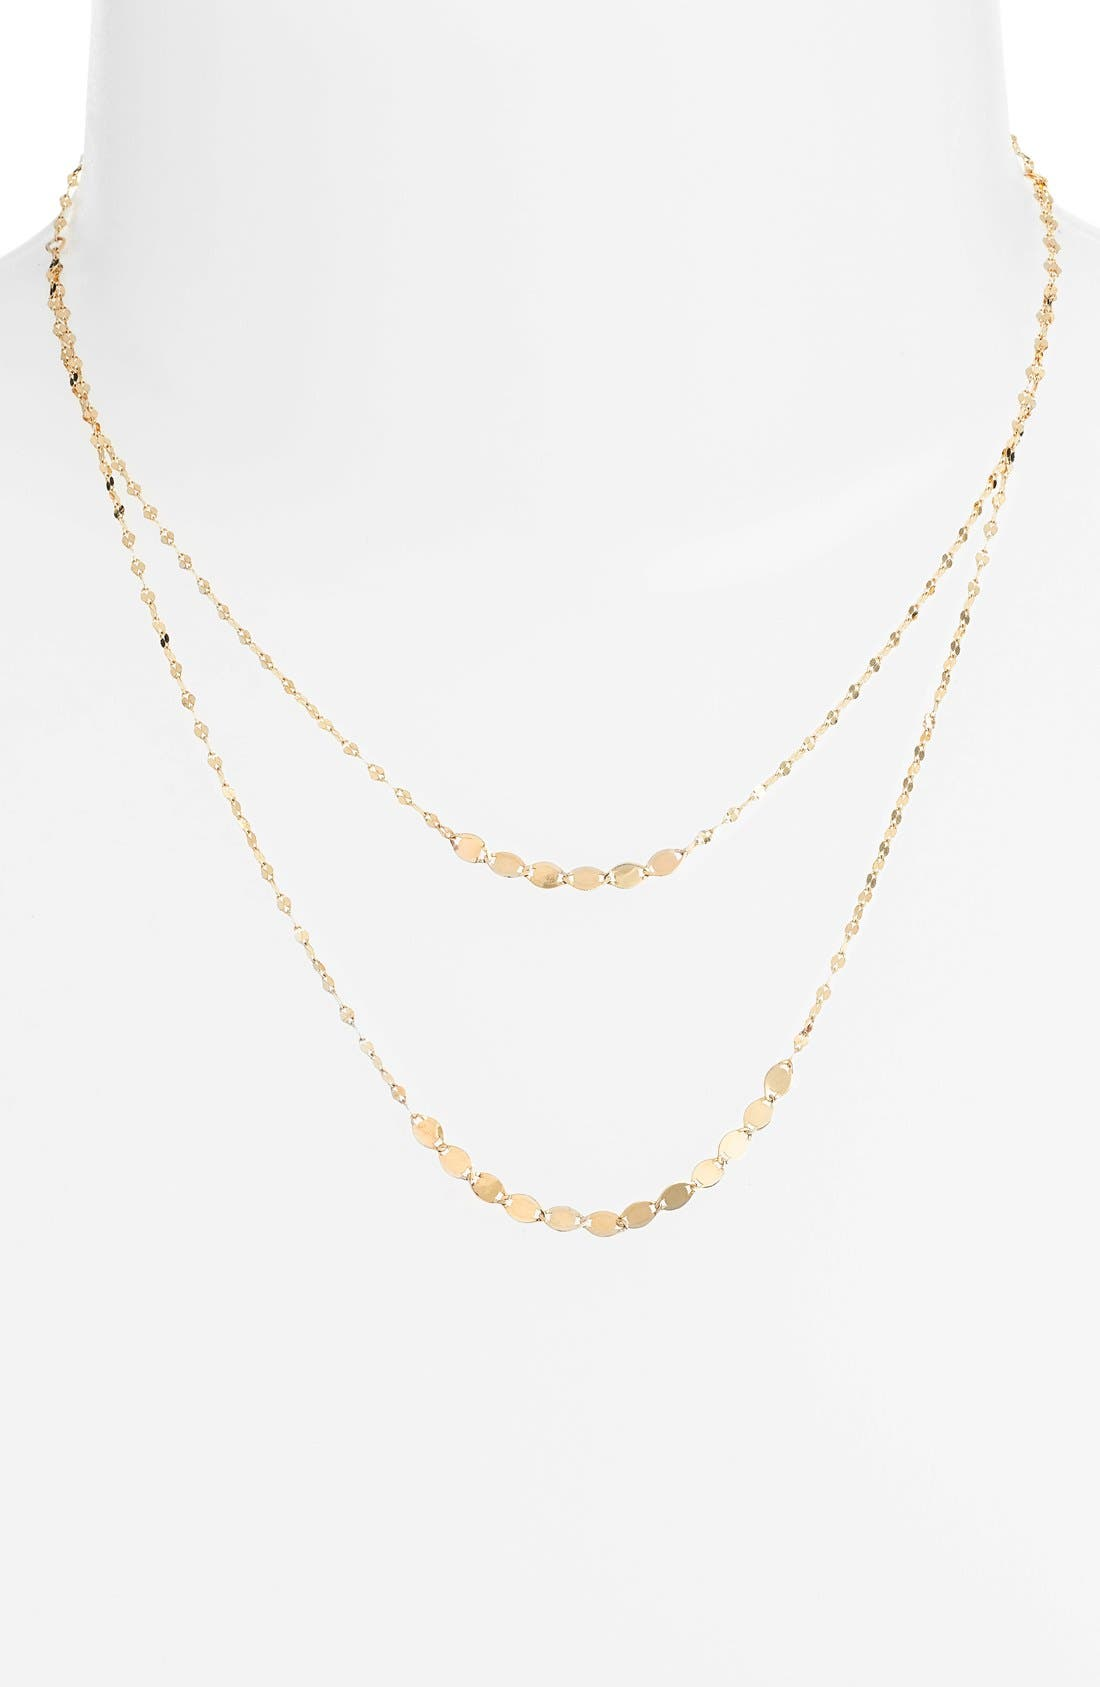 Alternate Image 1 Selected - Lana Jewelry 'Nude Duo' Multistrand Necklace